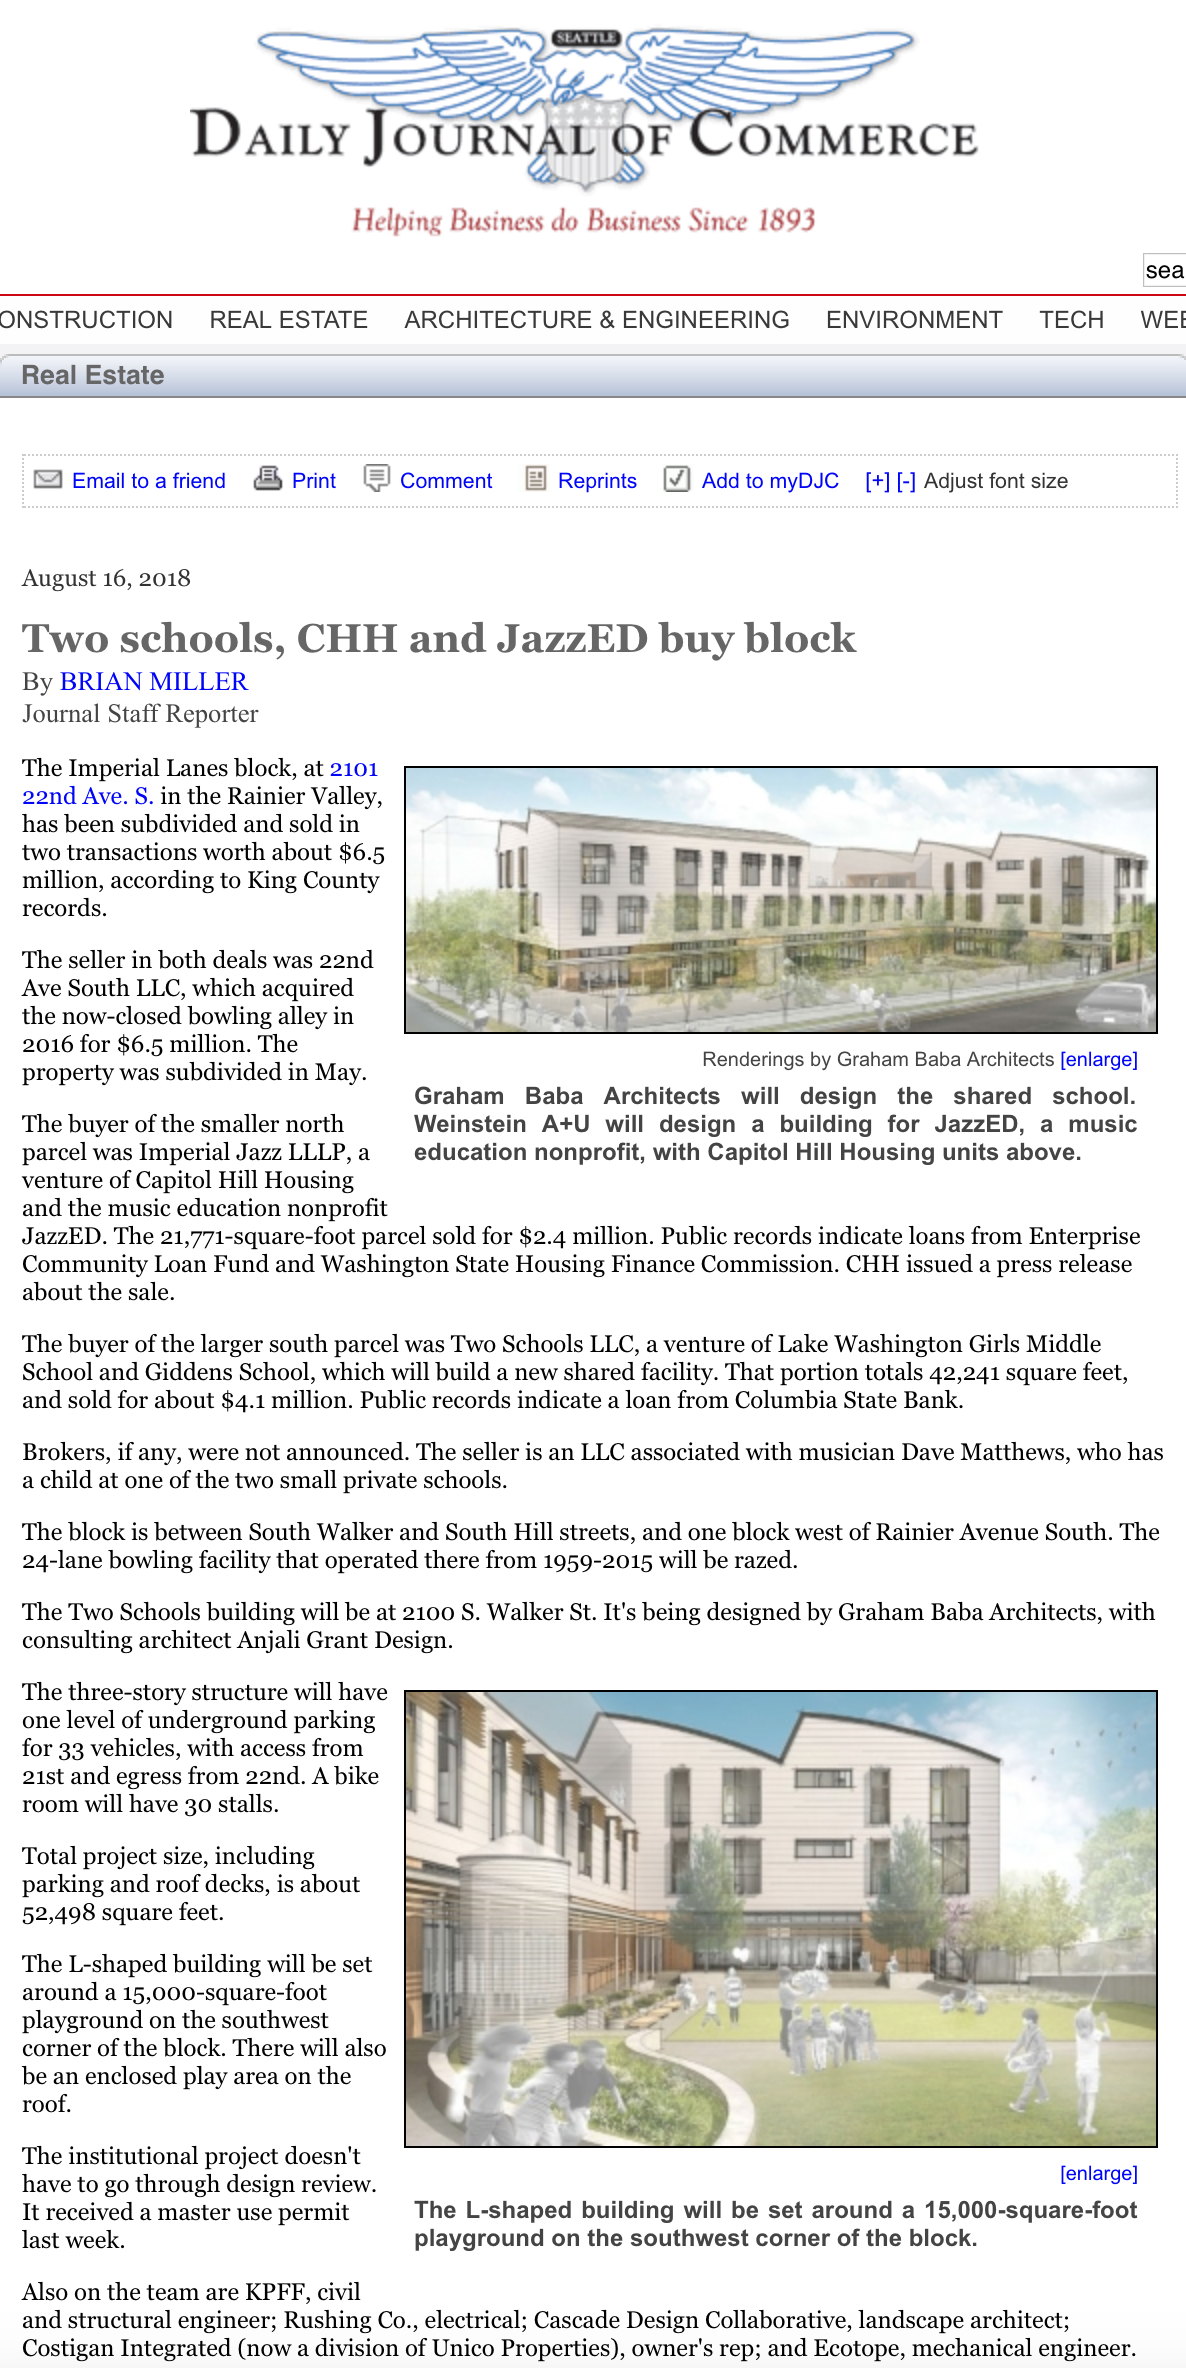 Two Schools, CHH, and JazzED Buy Block - By Brian Miller / August 16, 2018 / Daily Journal of Commerce